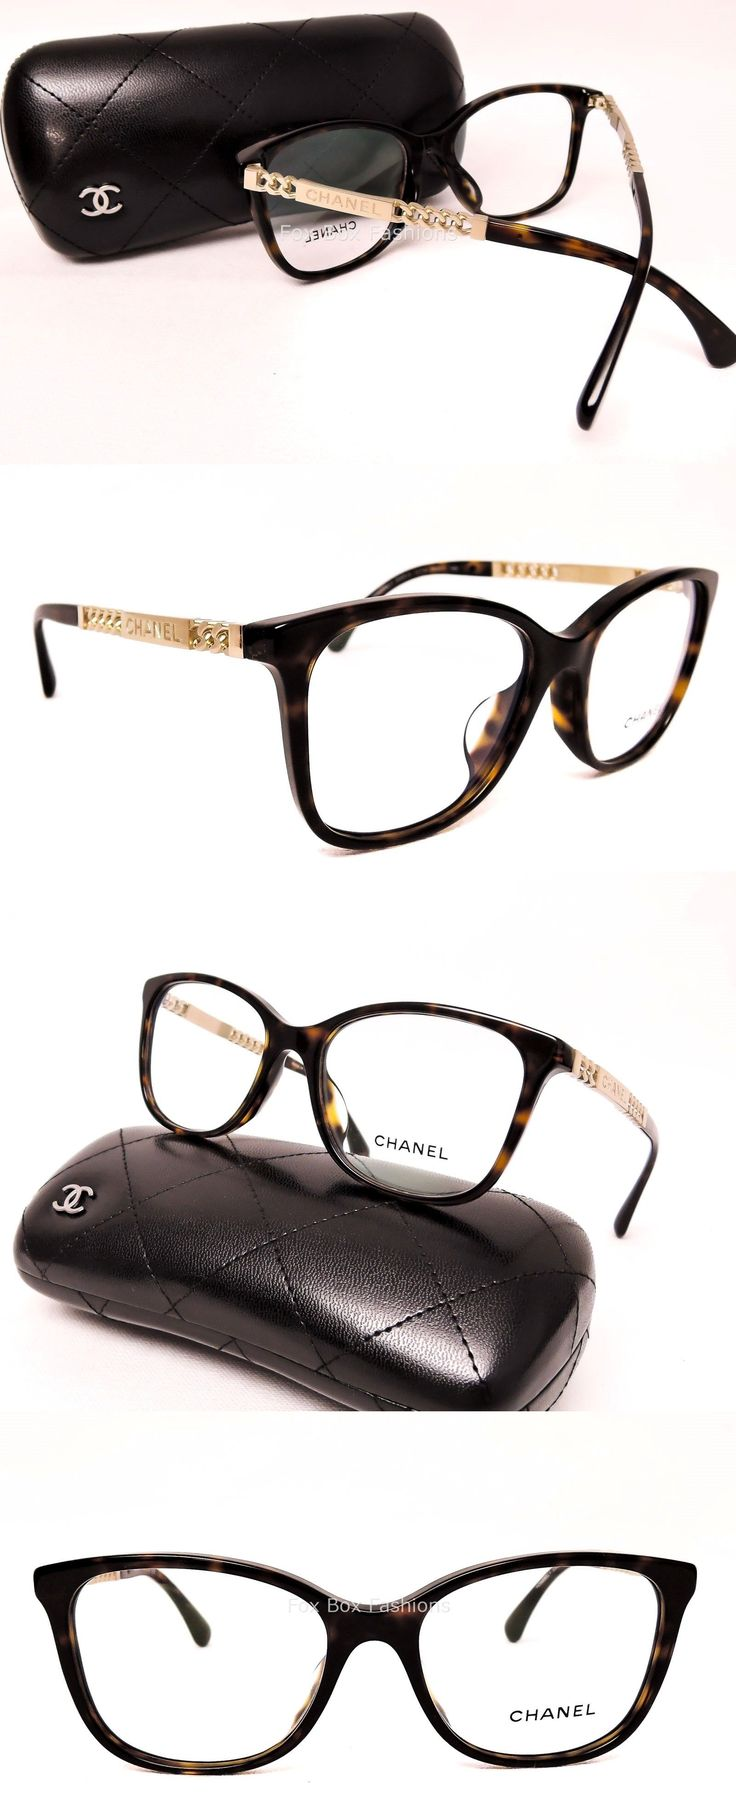 17 Best ideas about Optical Frames on Pinterest Glasses ...